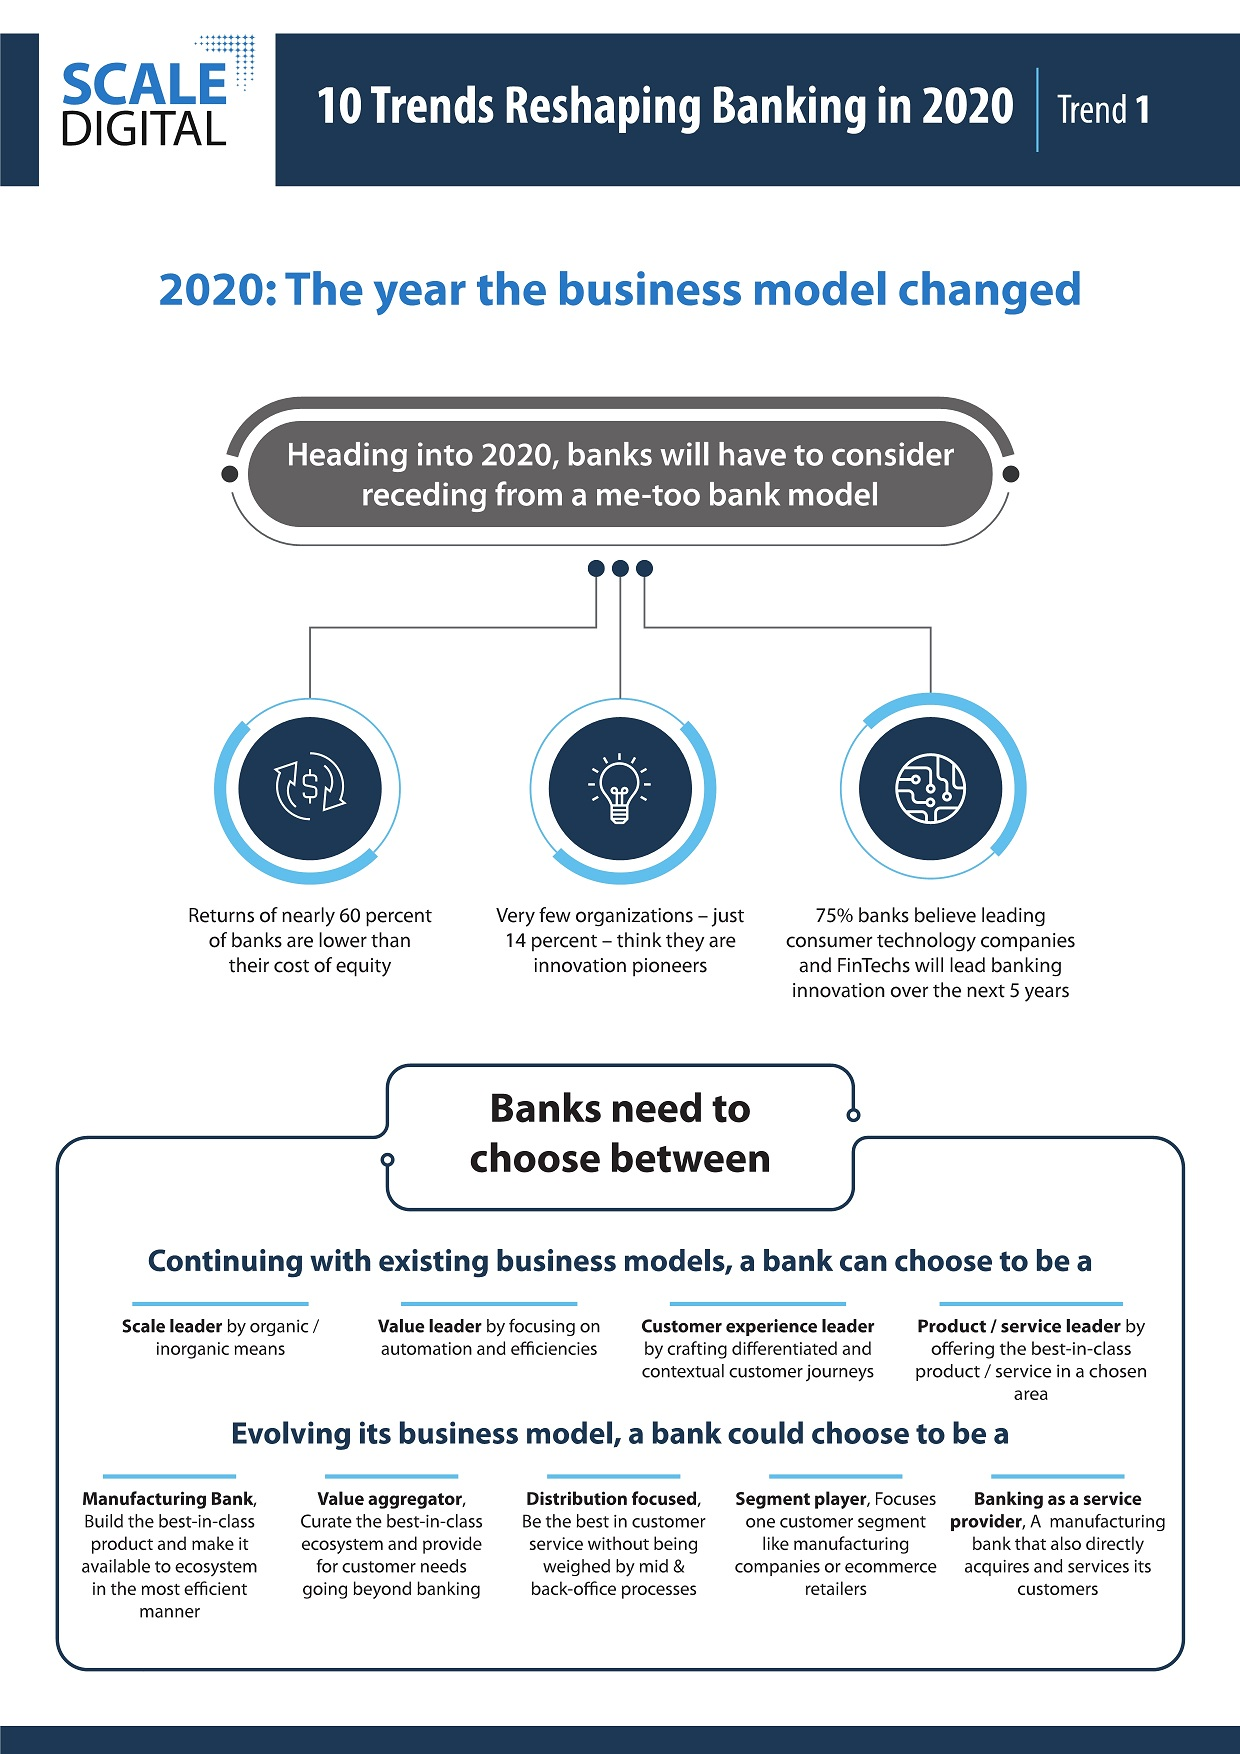 10 trends reshaping banking in 2020: #1 the business model changed